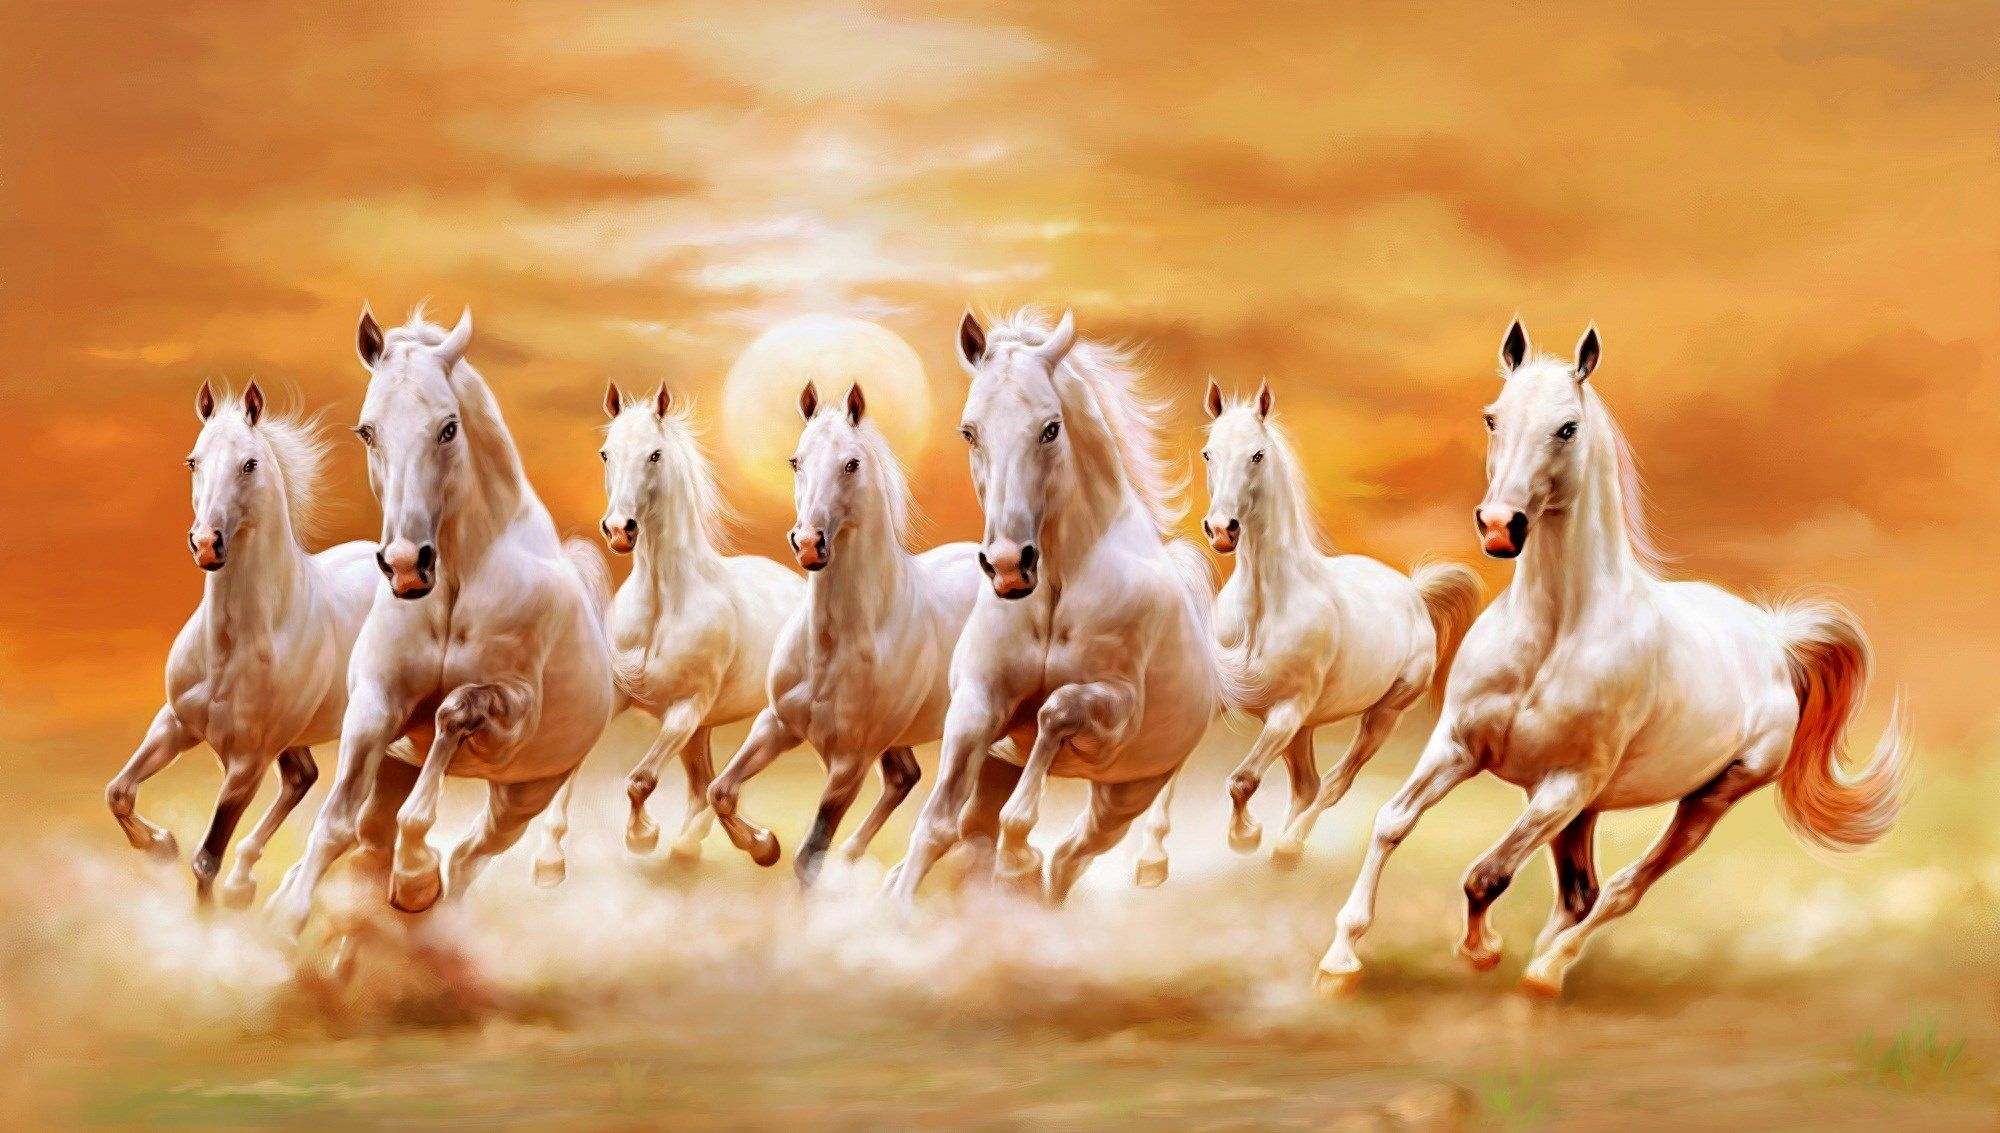 1418213 Horse Category High Quality Horse Pic Seven Horses Painting Horse Wallpaper Horse Canvas Painting